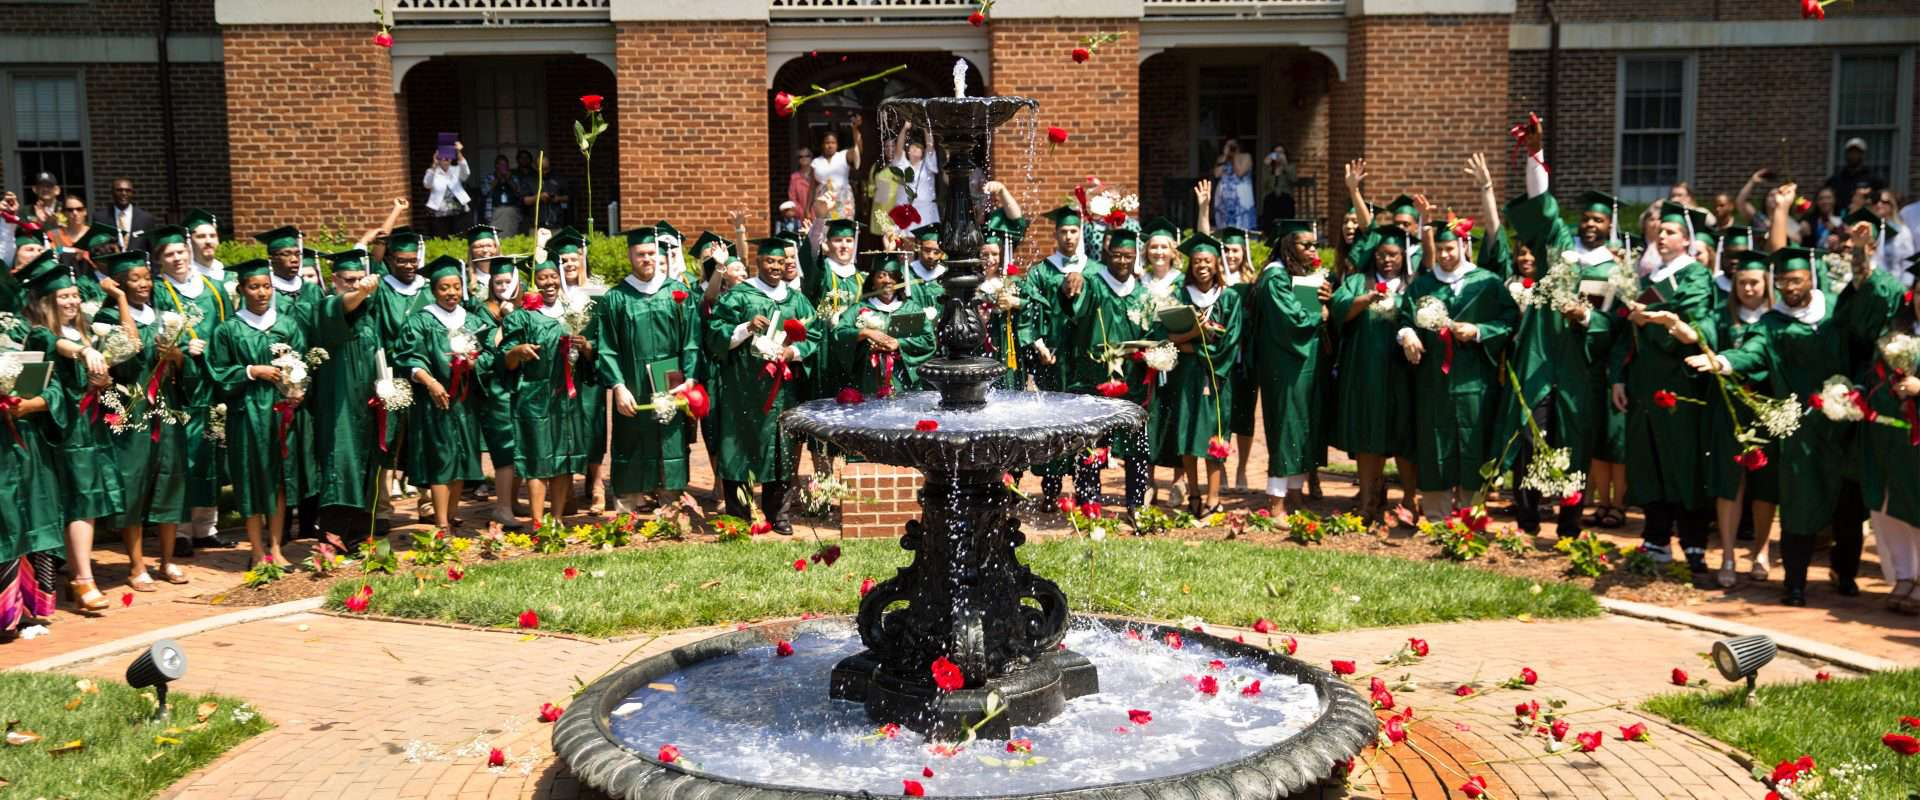 Every year, student throw their graduation roses into the historic Main Fountain